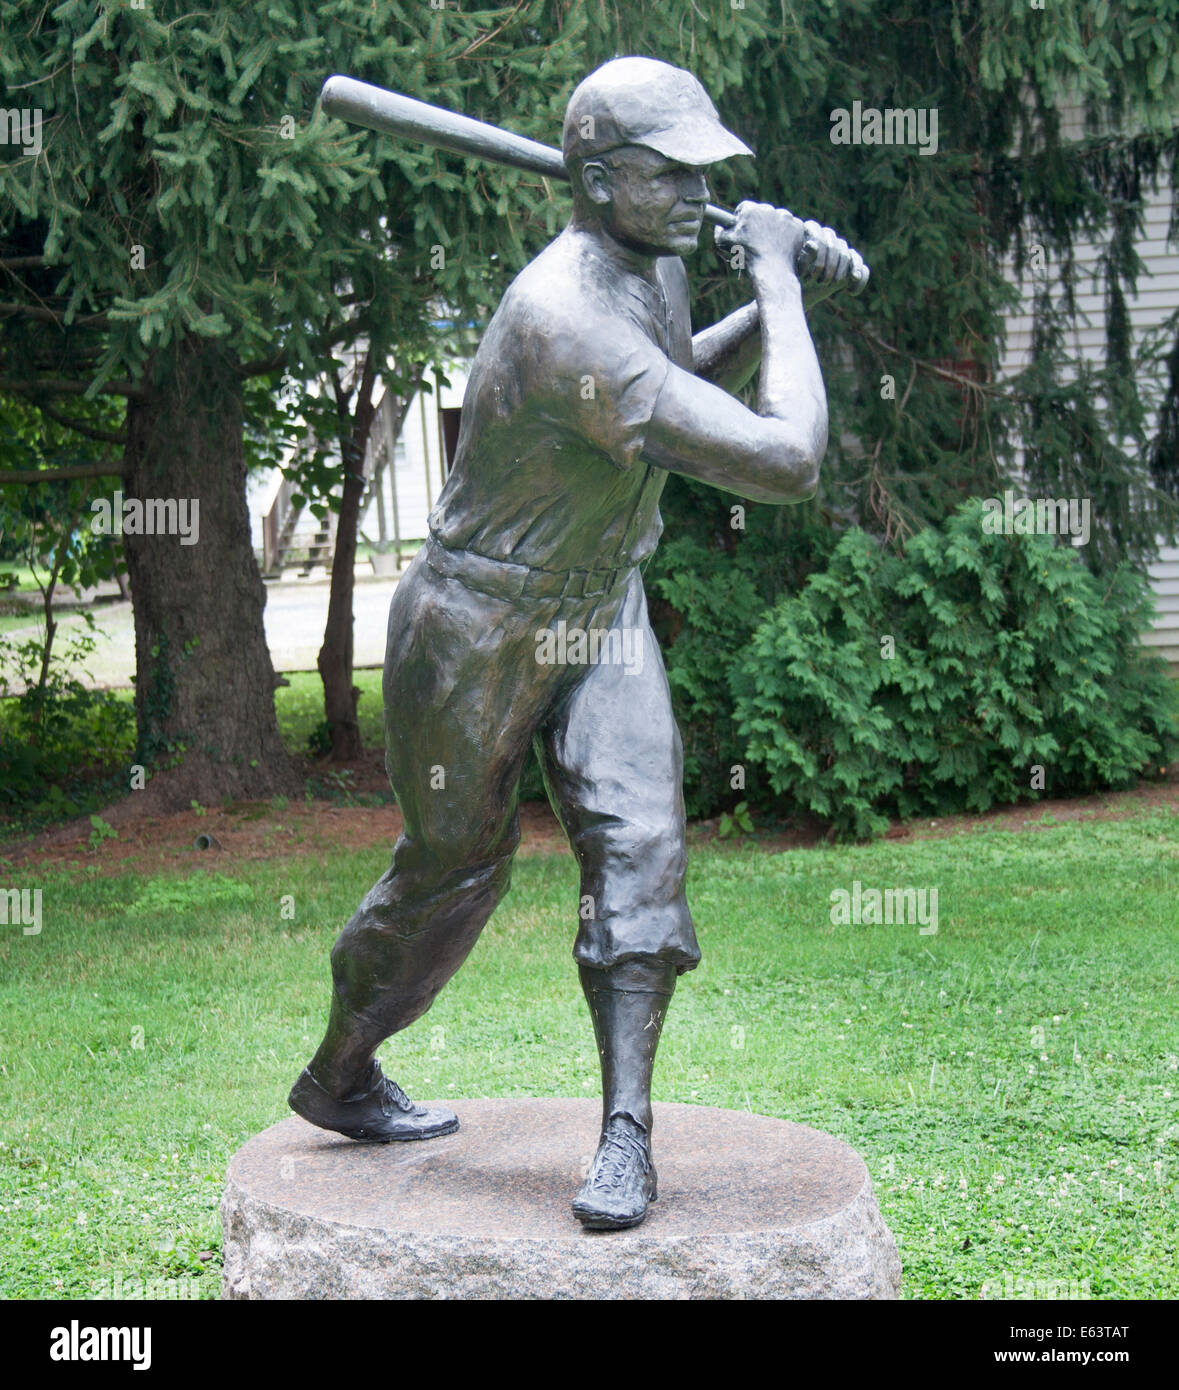 Baseball legend James Foxx statue in a park in Sudlersville Maryland - Stock Image